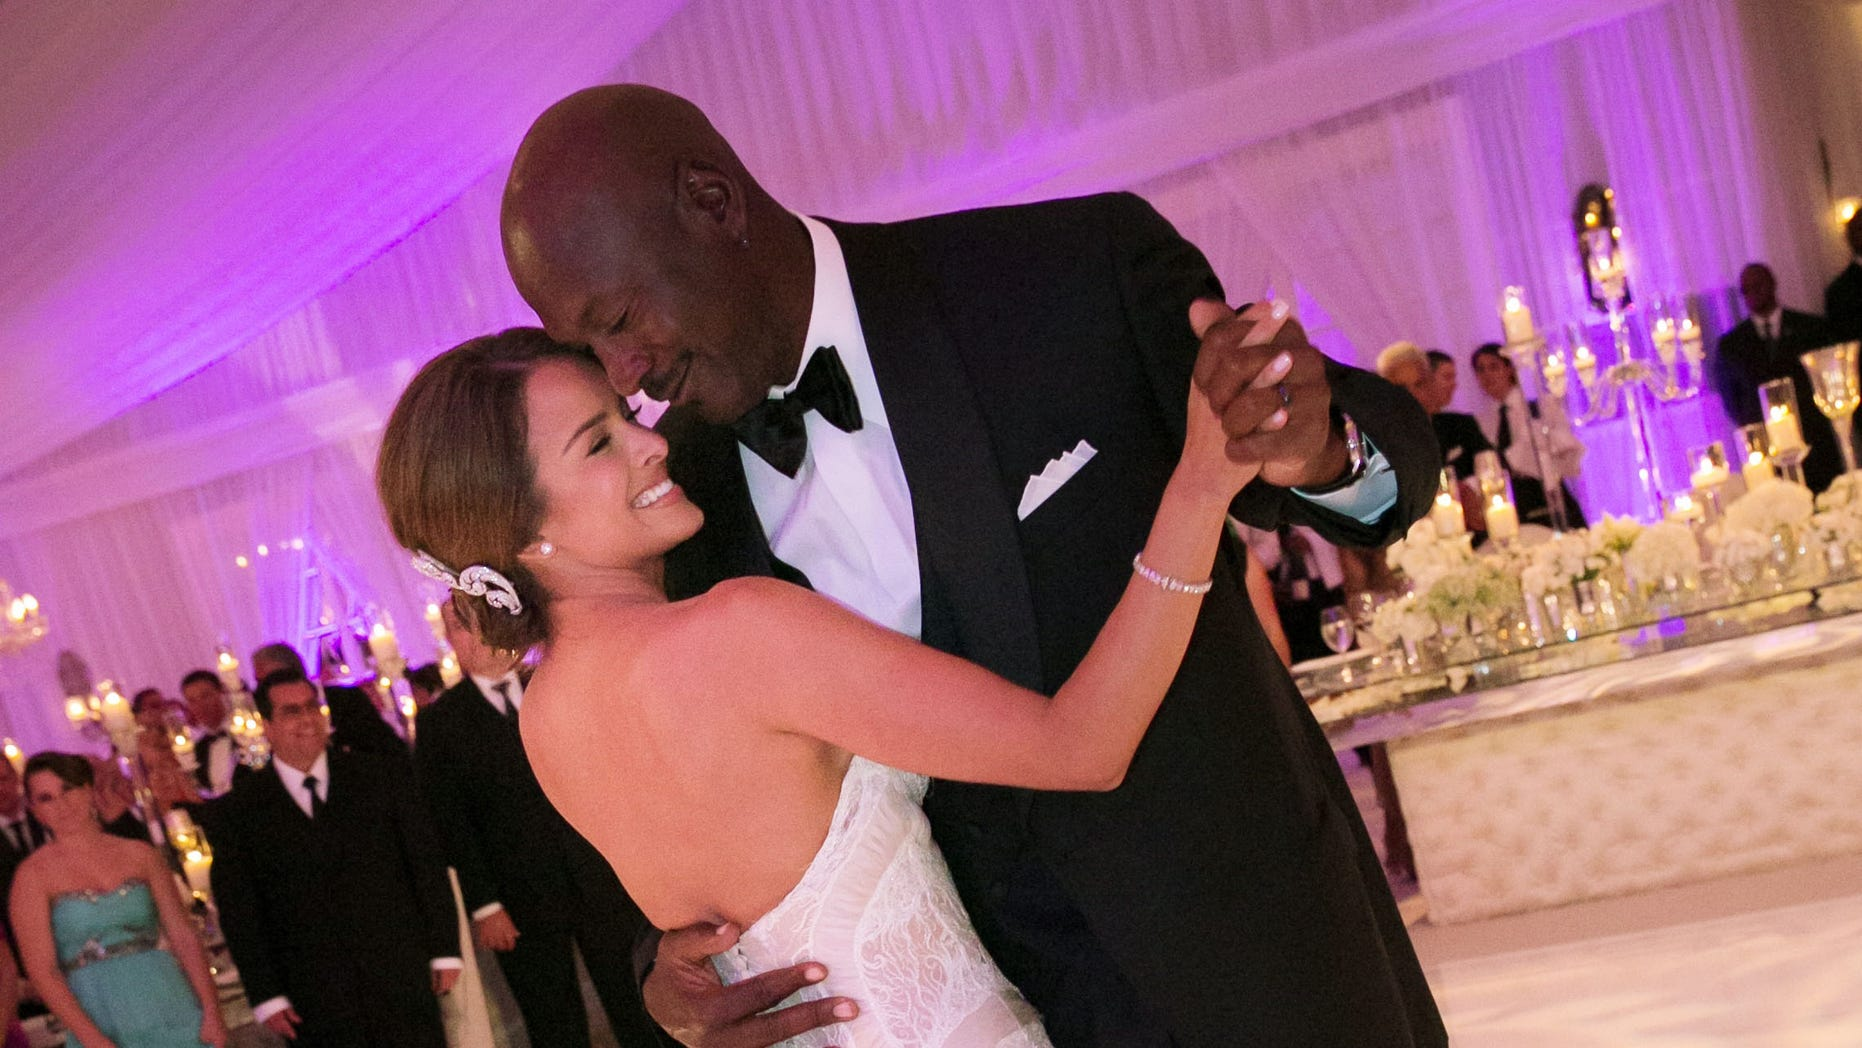 In this Saturday, April 27, 2013, photo provided by JUMP.DC, Charlotte Bobcats owner Michael Jordan dances with his bride Yvette Prieto during their wedding reception at the Bear's Club in Jupiter, Fla. The wedding took place at the Episcopal Church of Bethesda-by-the-Sea with more than 300 guests in attendance, including Tiger Woods, Patrick Ewing and Ahmad Rashad, Jordan's manager Estee Portnoy told The Associated Press Sunday.